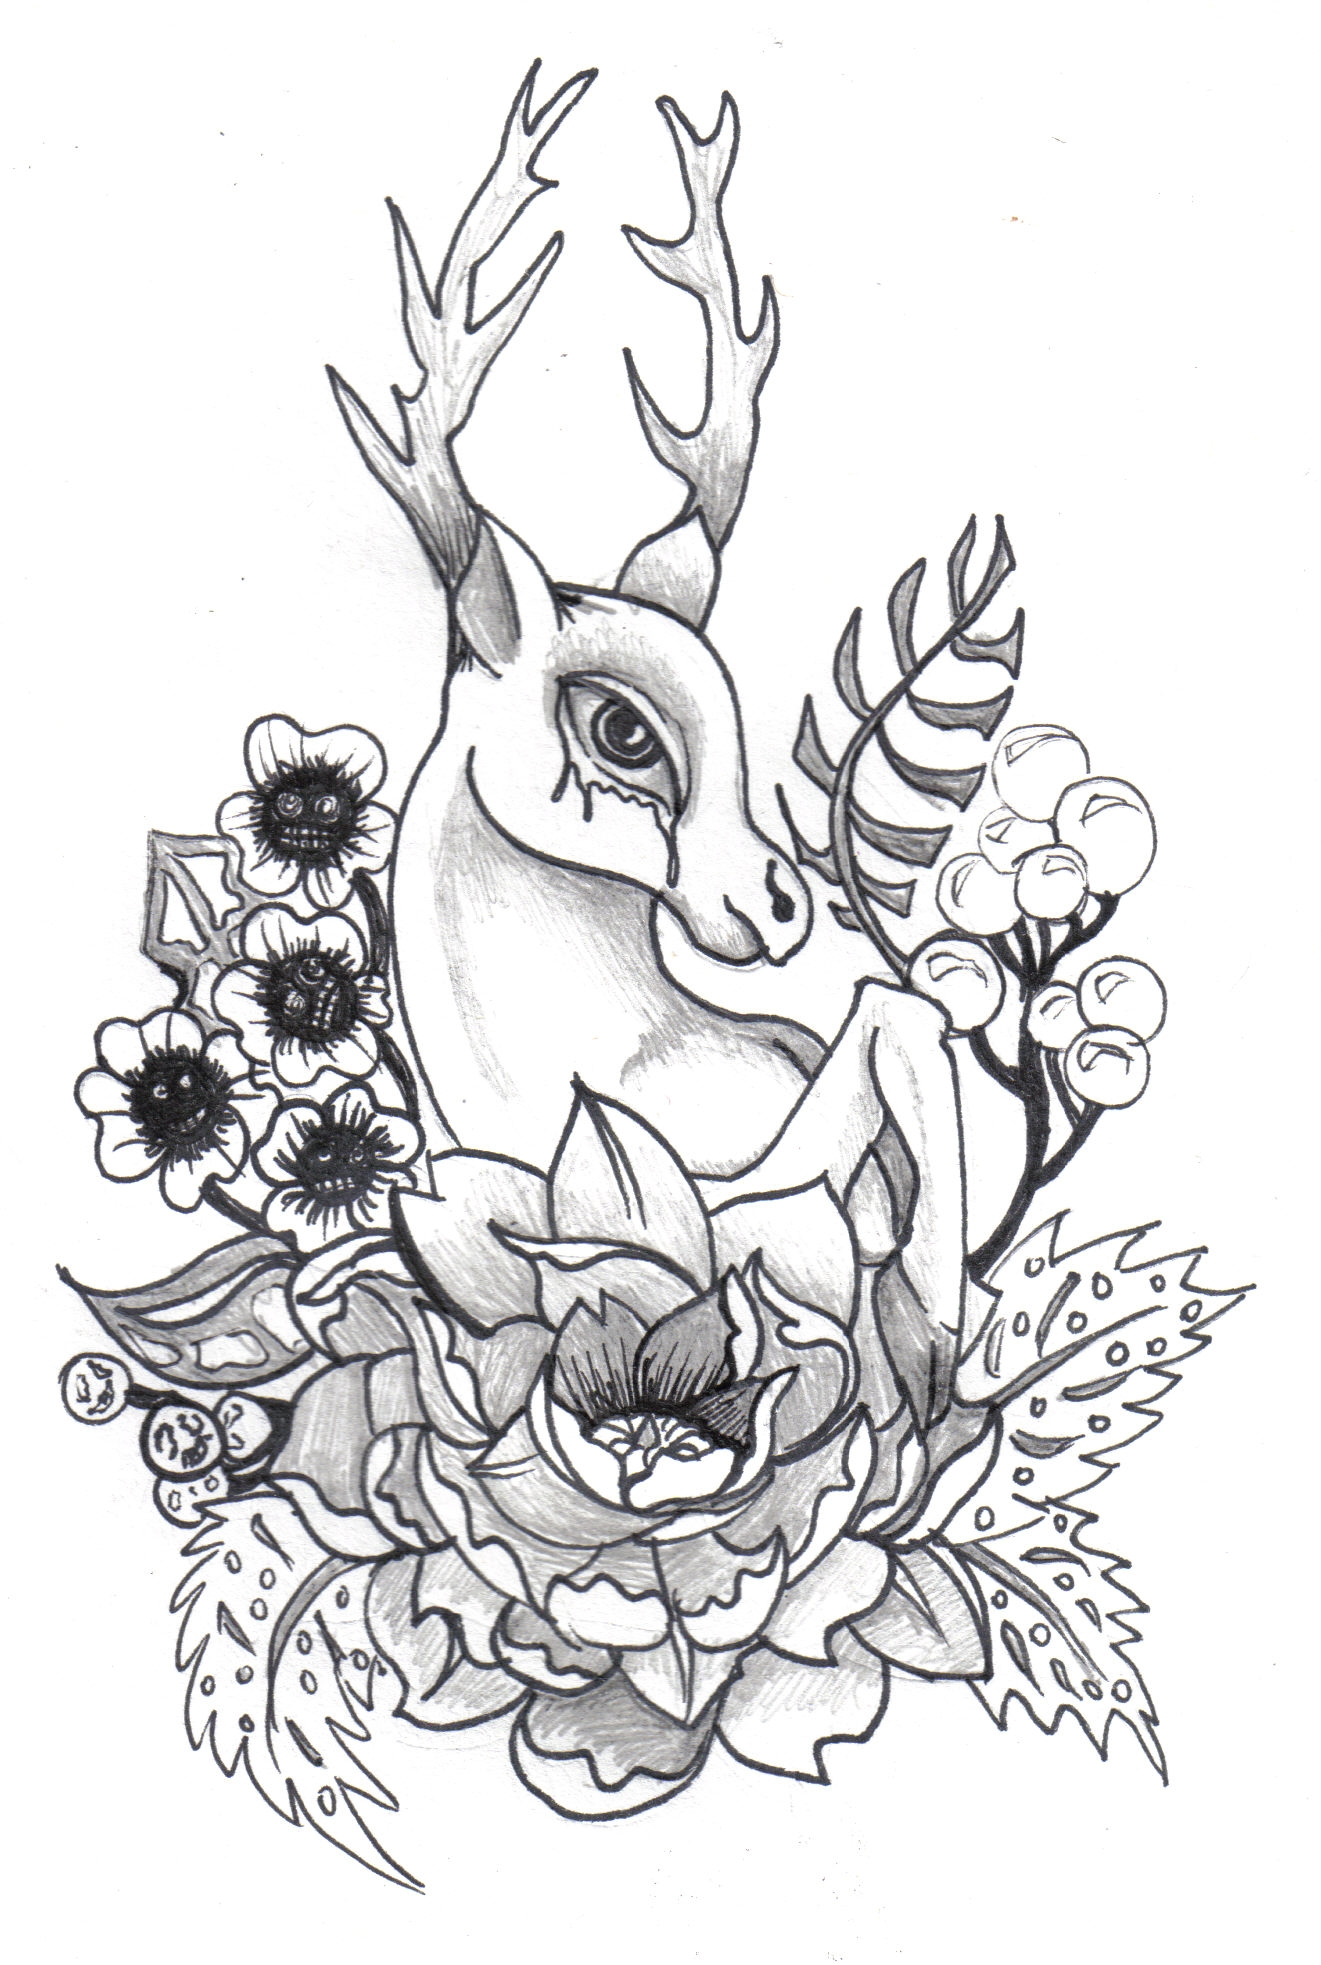 NO TEARS DEER   Original illustration done with pen and ink and pencil on paper.Prints availiable in my shop.